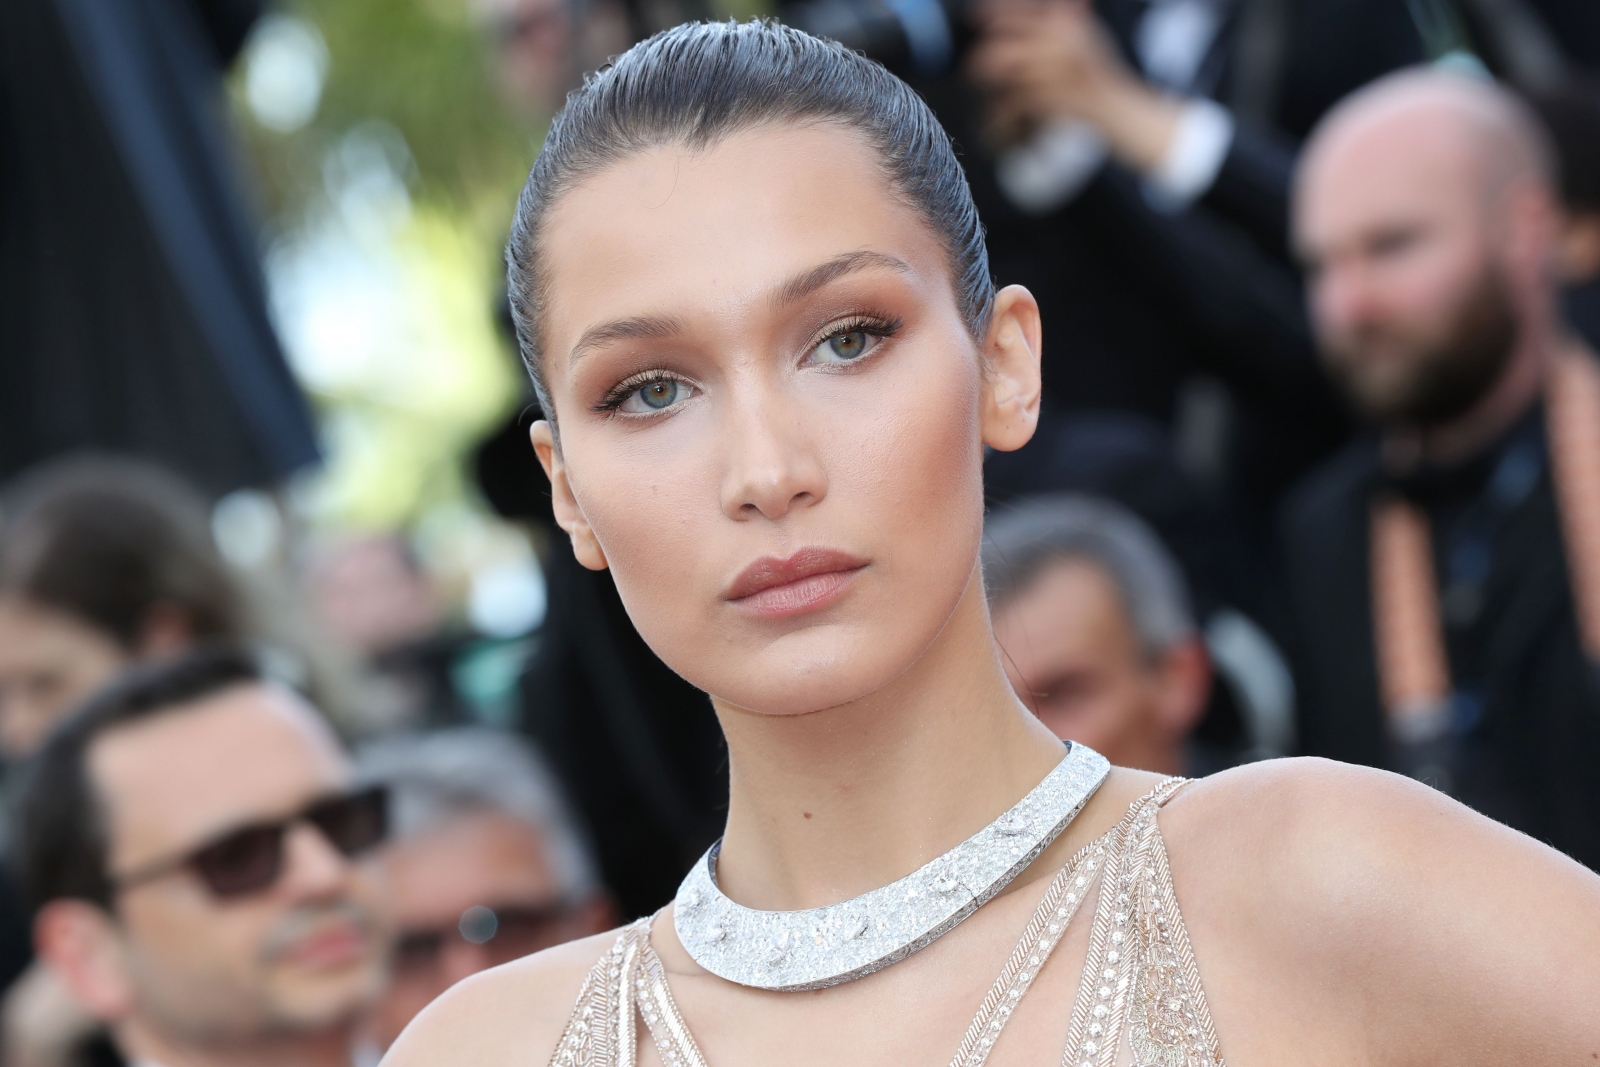 Supermodel Bella Hadid on Donald Trump's controversial travel ban: 'I am proud to be a Muslim'